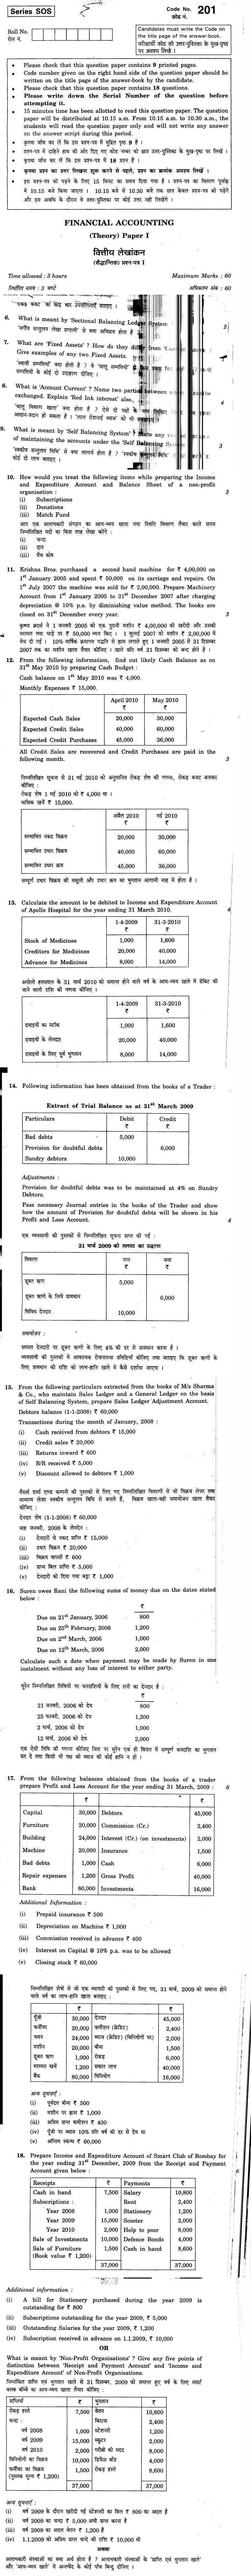 CBSE Class XII Previous Year Question Papers 2011 Financial Accounting